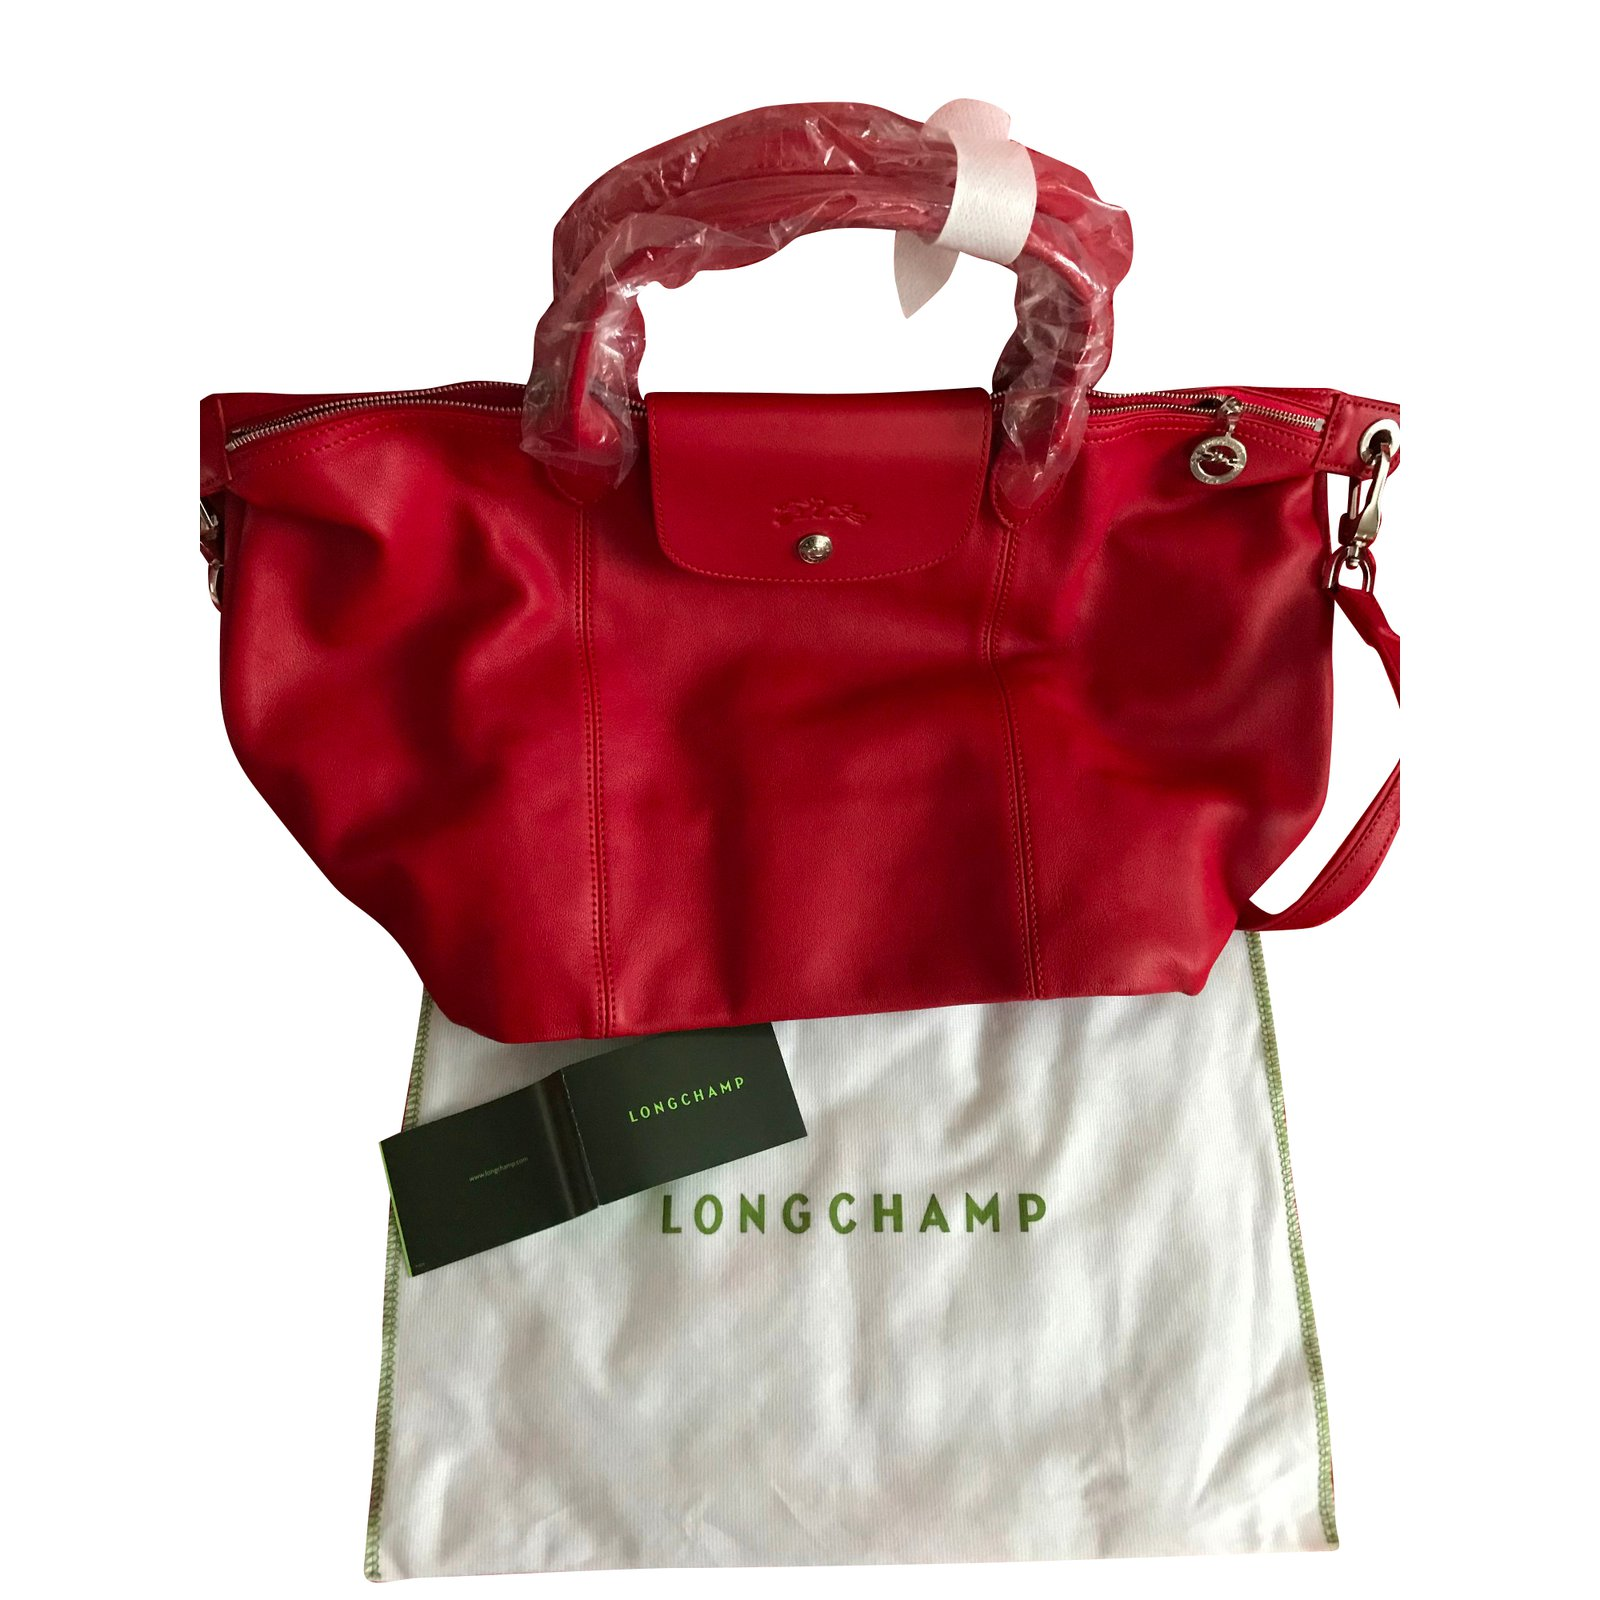 Le Pliage Cuir leather shopper - Red- New with tags